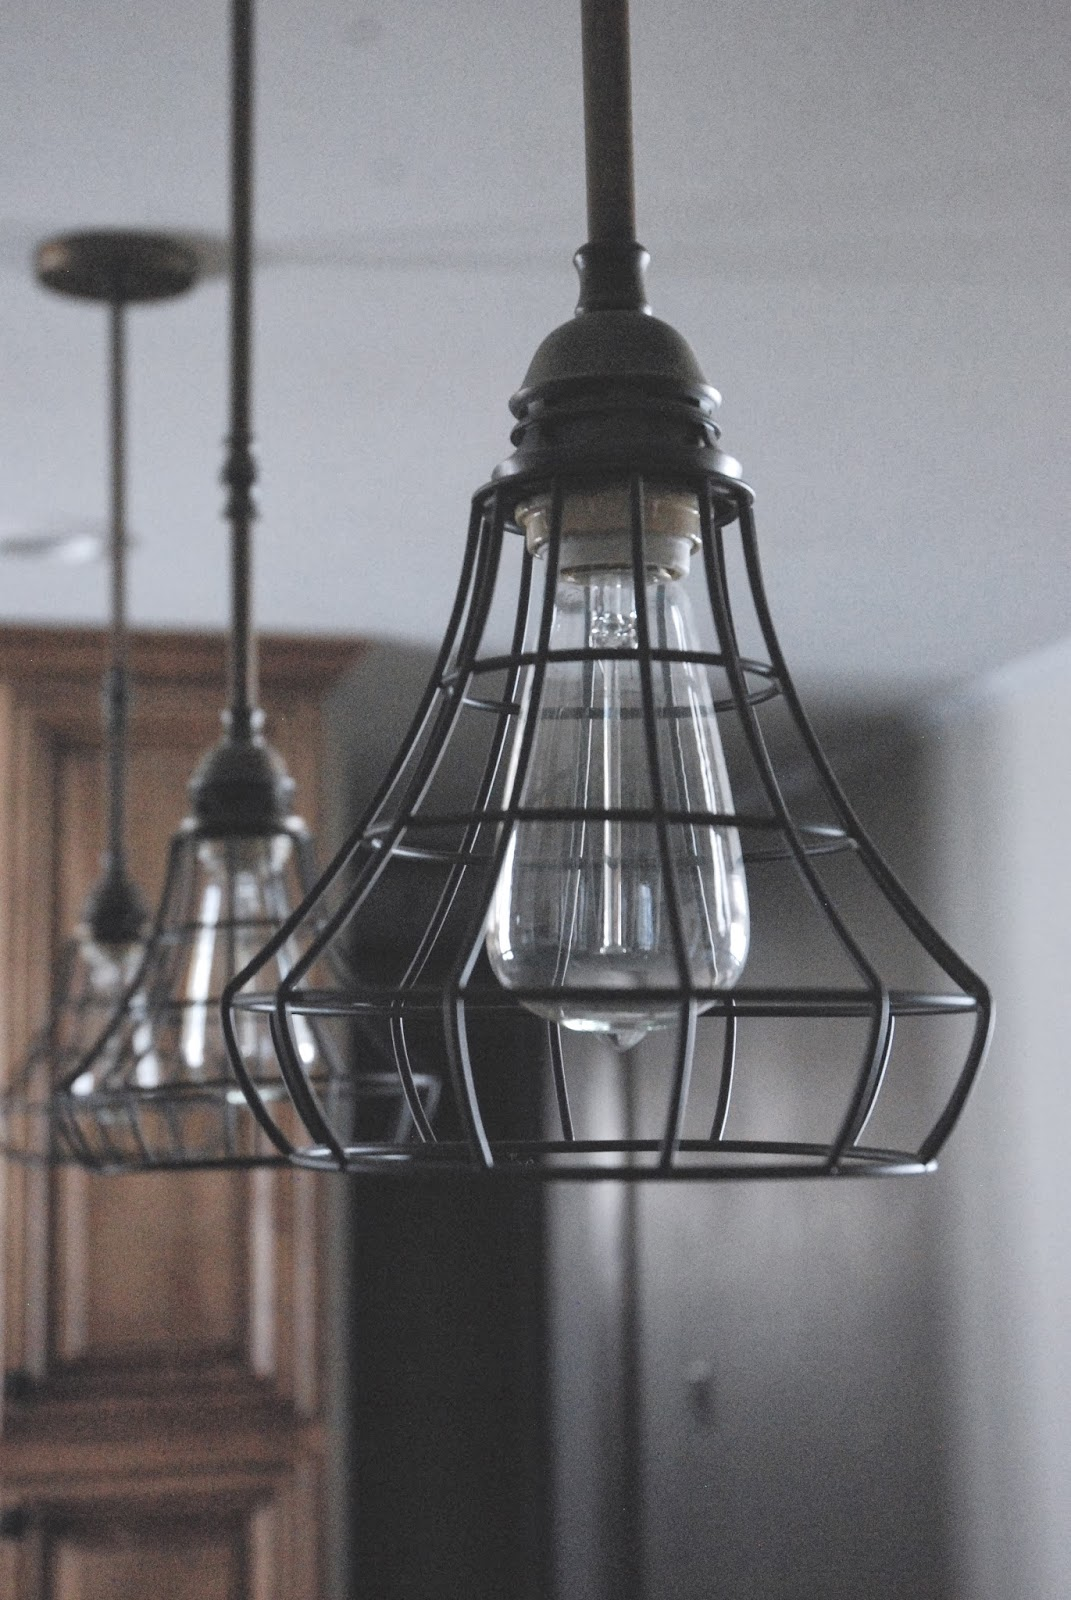 Diy Industrial Pendant Cage Light. Basement Water Problems. Basement Musty Smell Removal. Recessed Lighting In Basement. Basement Remodel Ideas And Plans Pictures. House Plans With Daylight Basements. Basement Storage. Basement Repair Milwaukee. Soundproof A Basement Ceiling